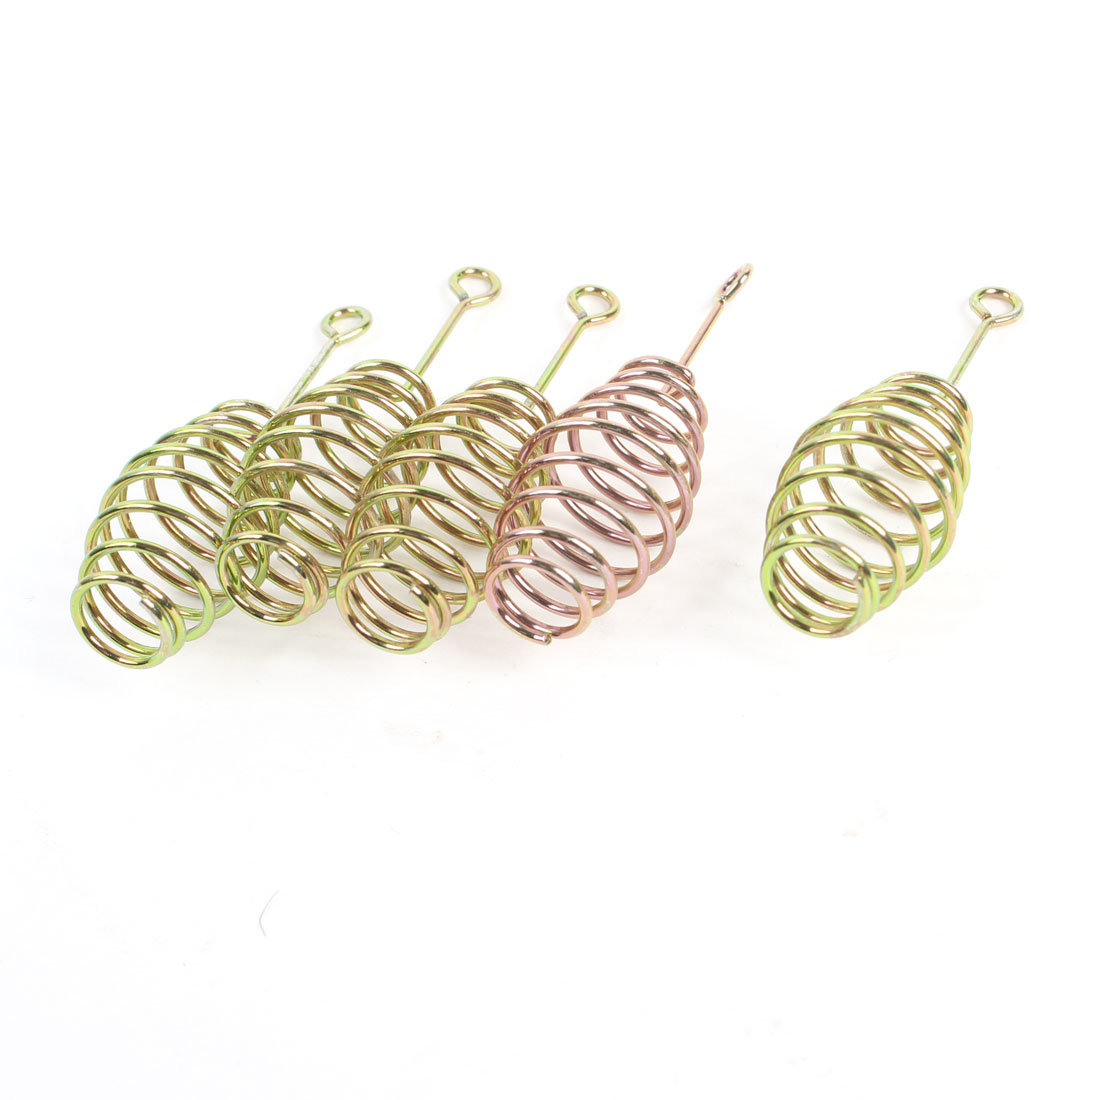 5 Pcs Bronze Tone Replacement Metal Fishing Feeder Coil